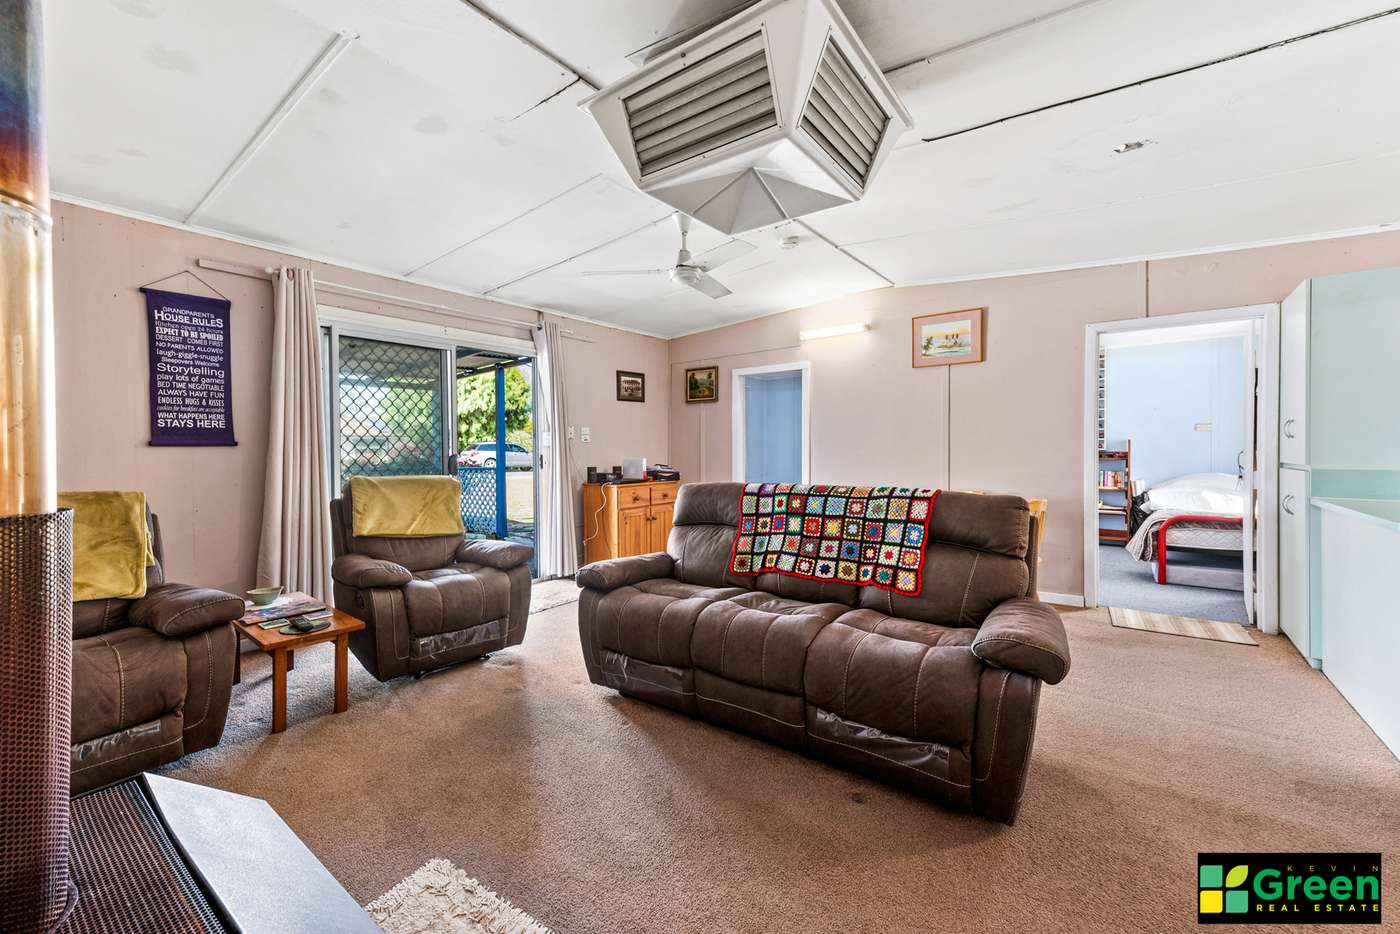 Sixth view of Homely house listing, 2 Nerine Street, Falcon WA 6210